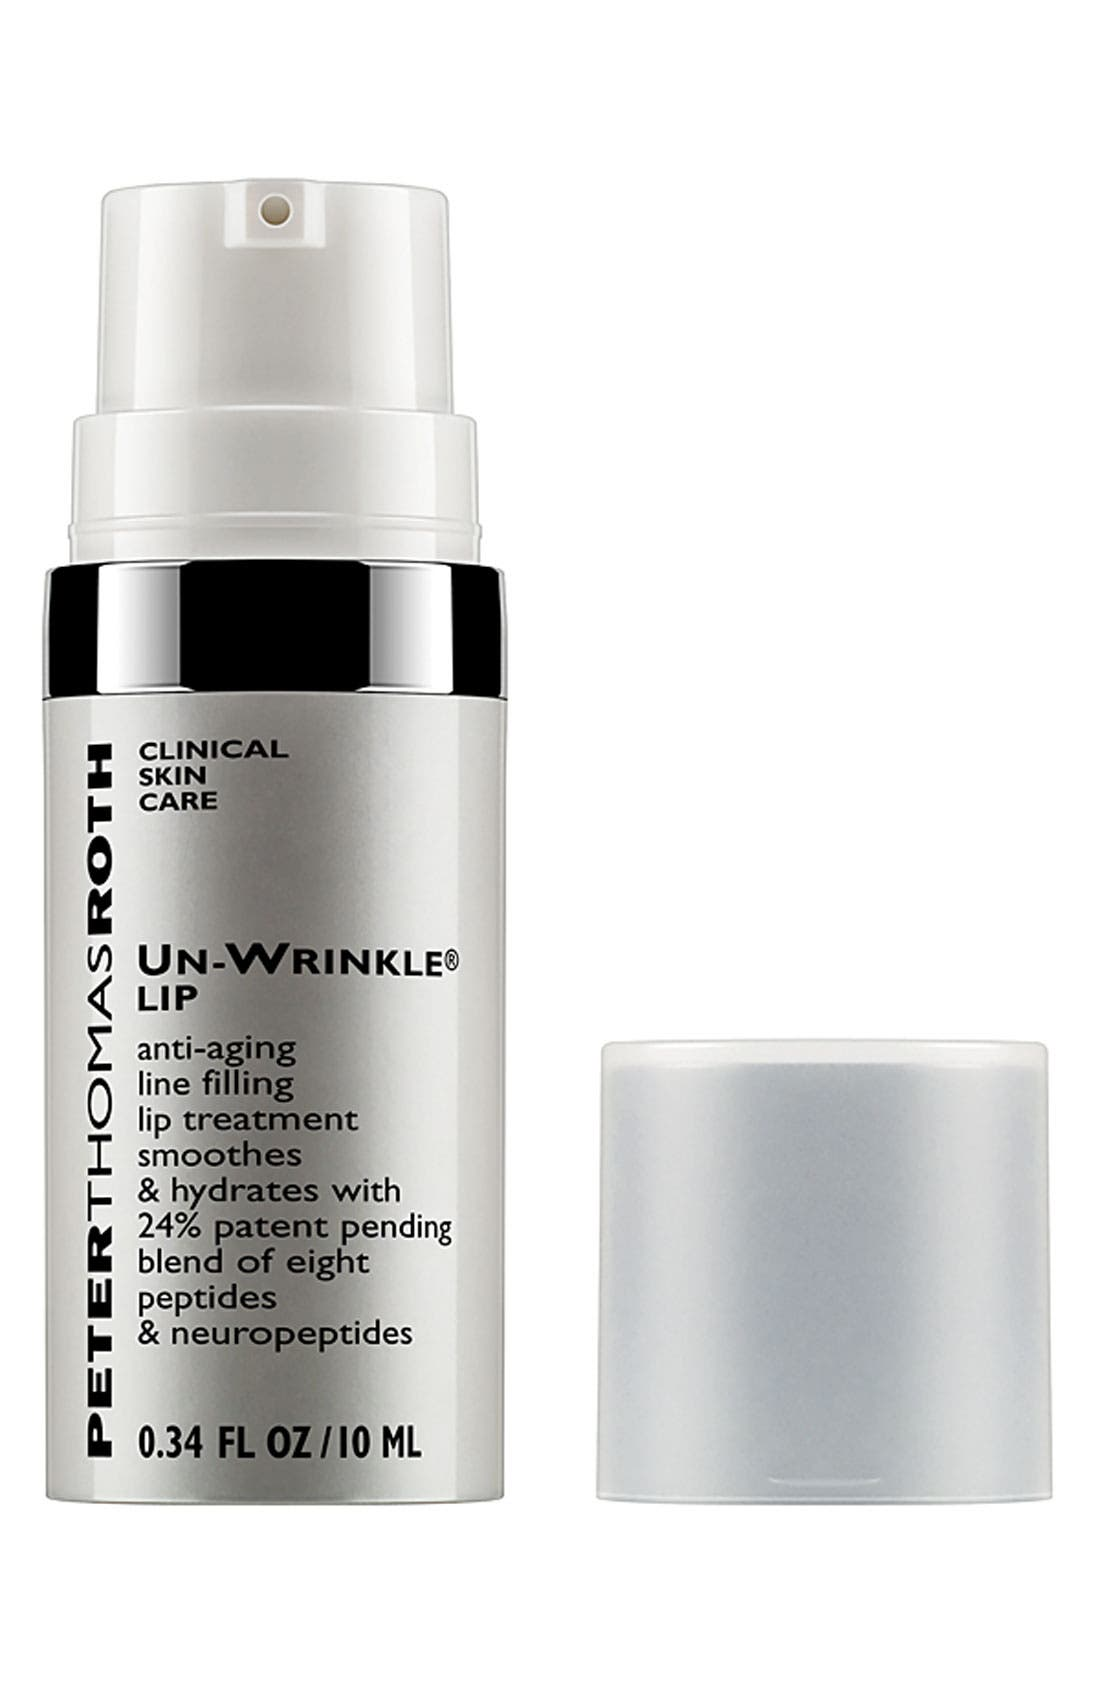 Peter Thomas Roth 'Un-Wrinkle®' Lip